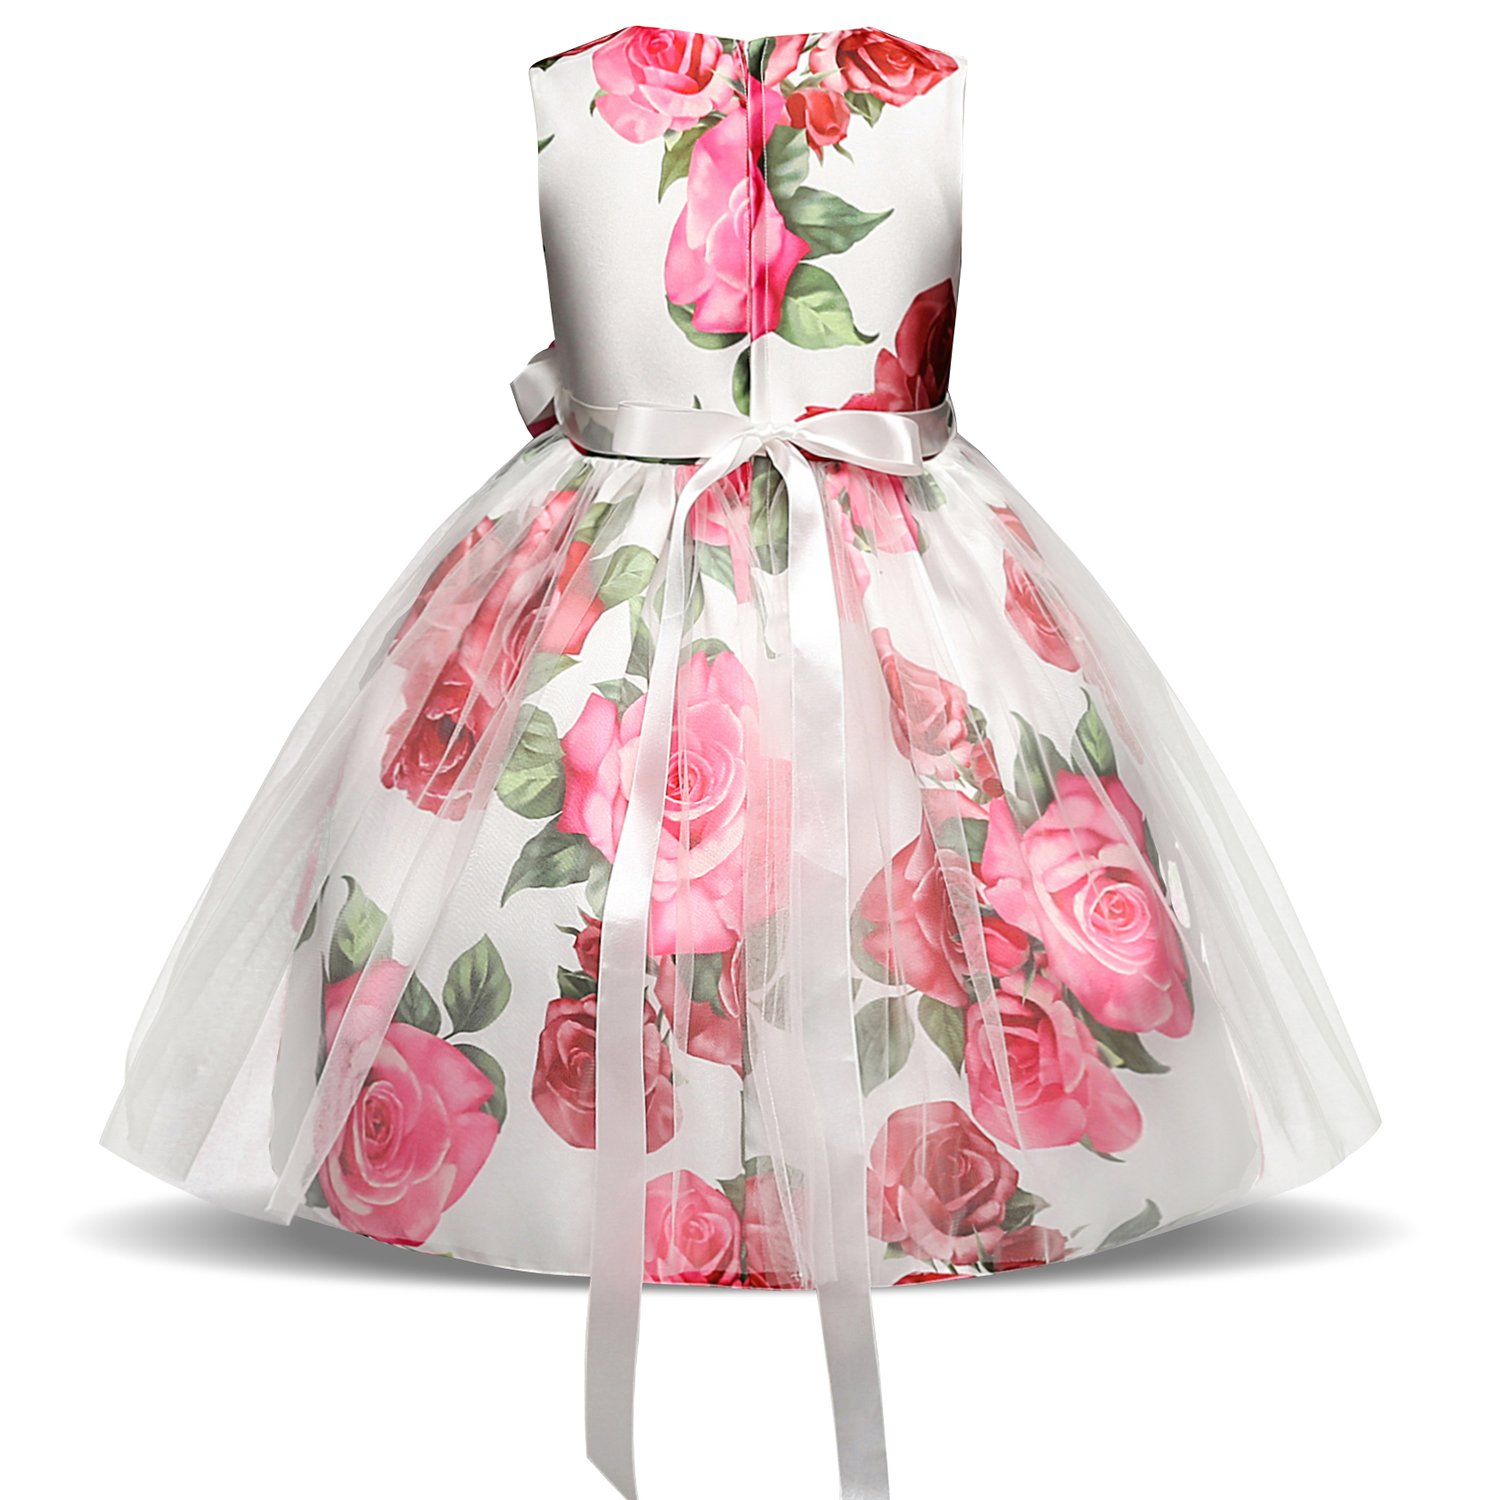 NNJXD Girl Flower Printed Cotton Elegant Tulle Bow Belt Princess Dress Size (130) 5-6 Years Pink by NNJXD (Image #2)